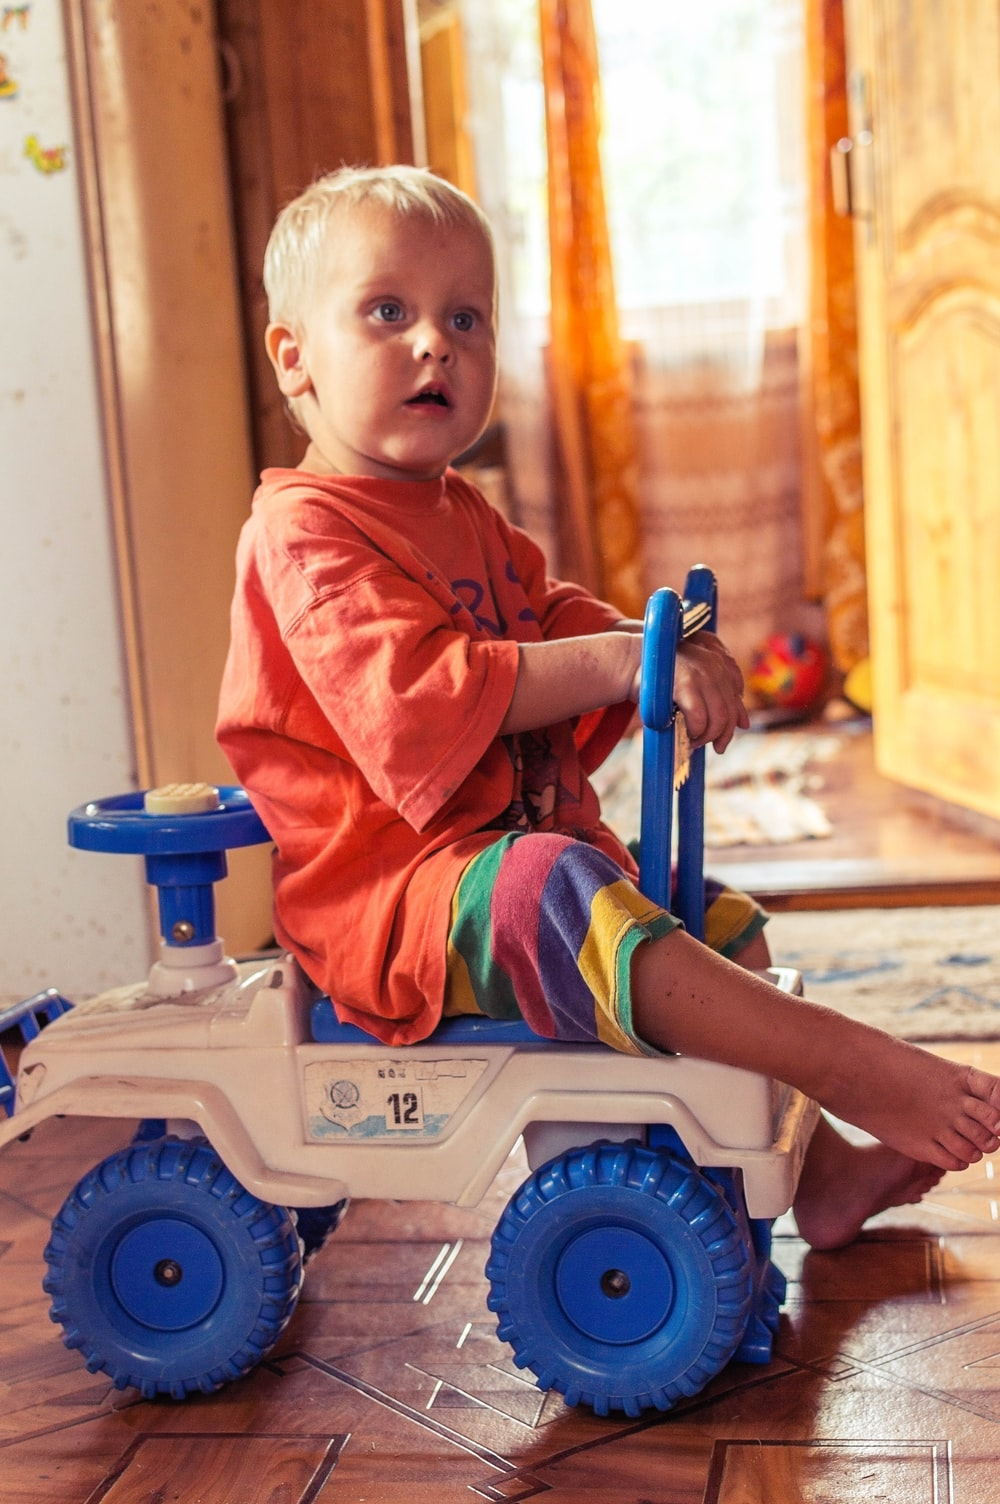 boy in red polo shirt sitting on white and blue plastic toy car